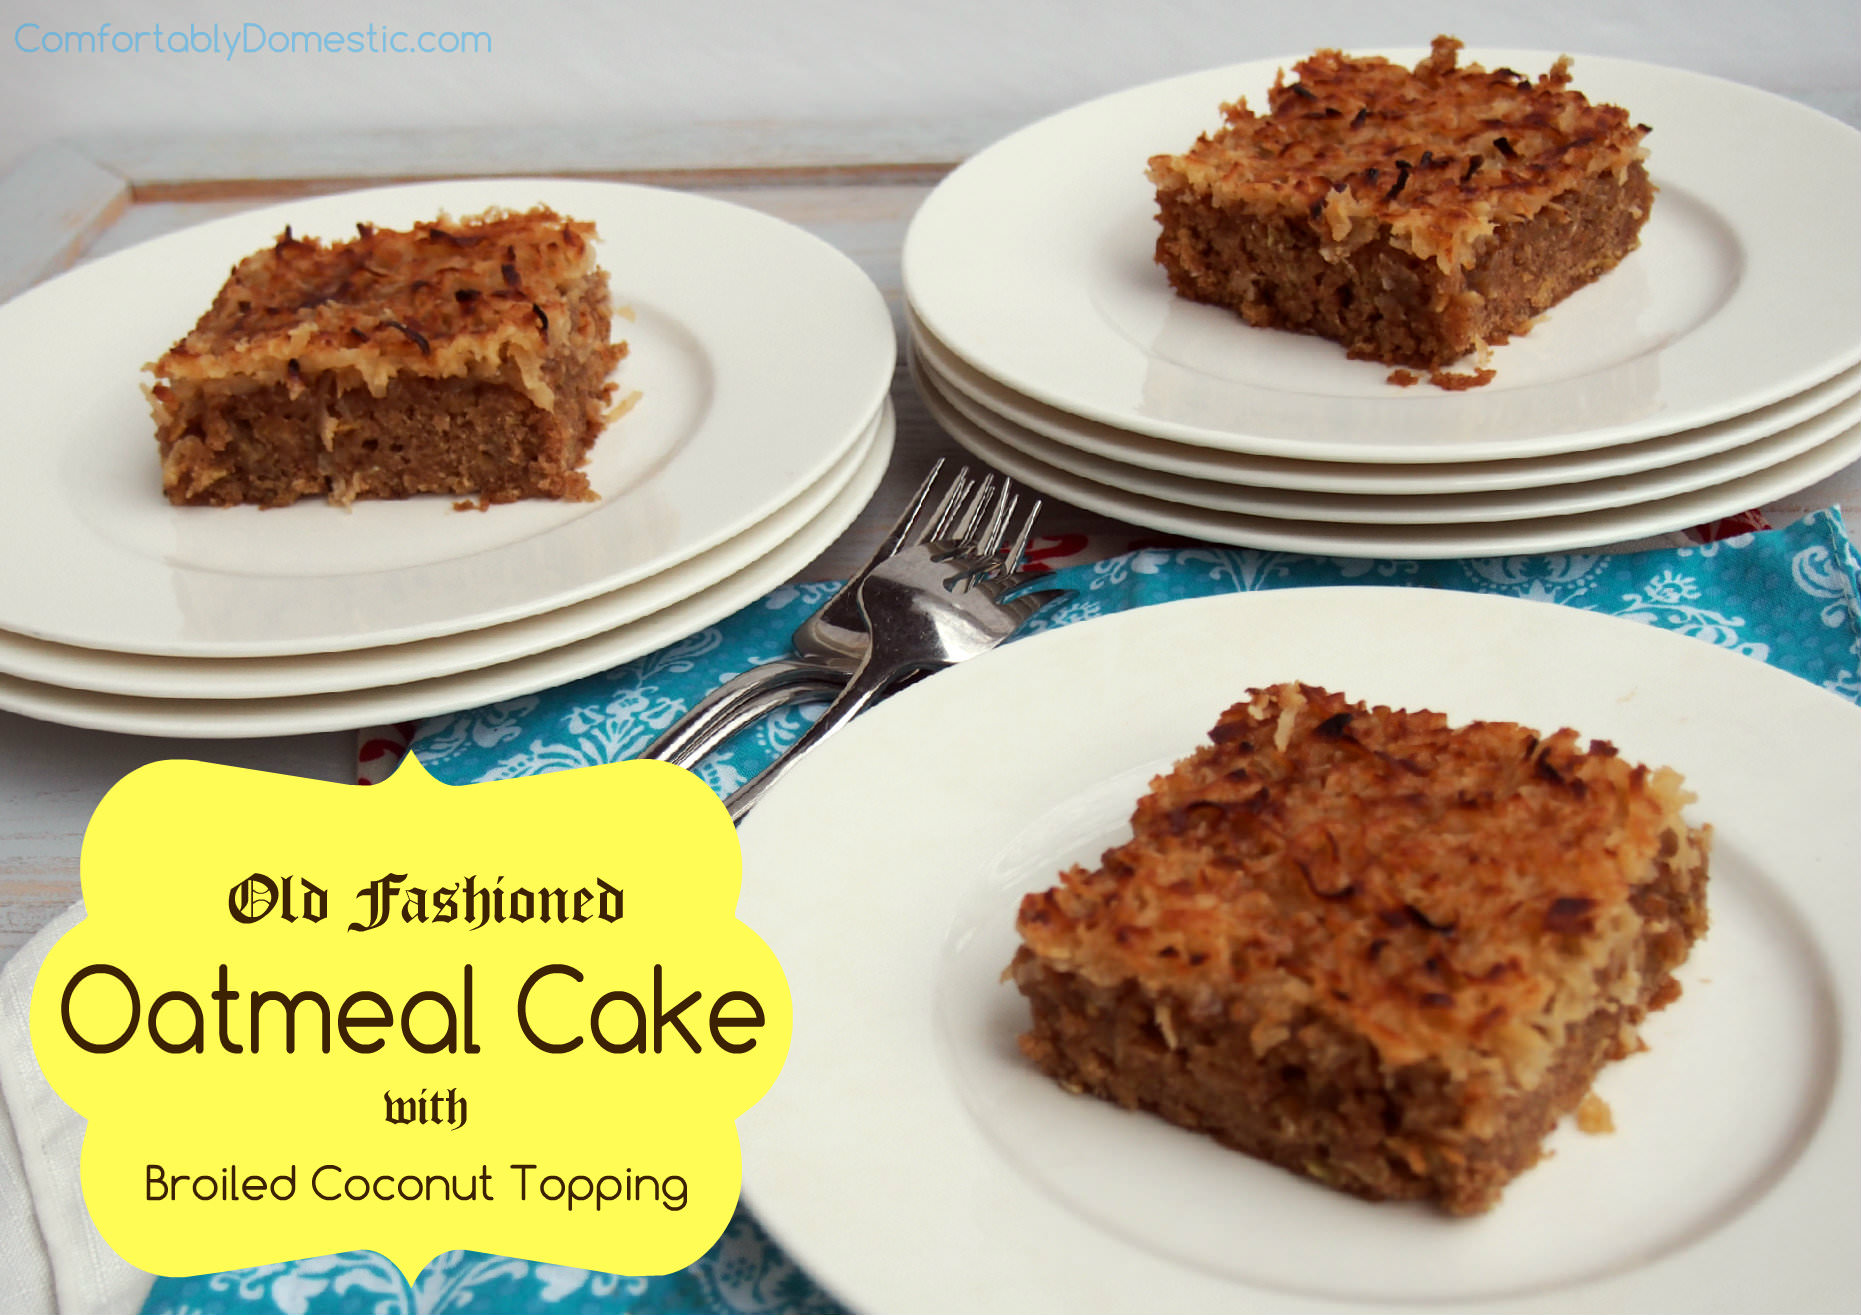 Old Fashioned Oatmeal Cake Comfortably Domestic